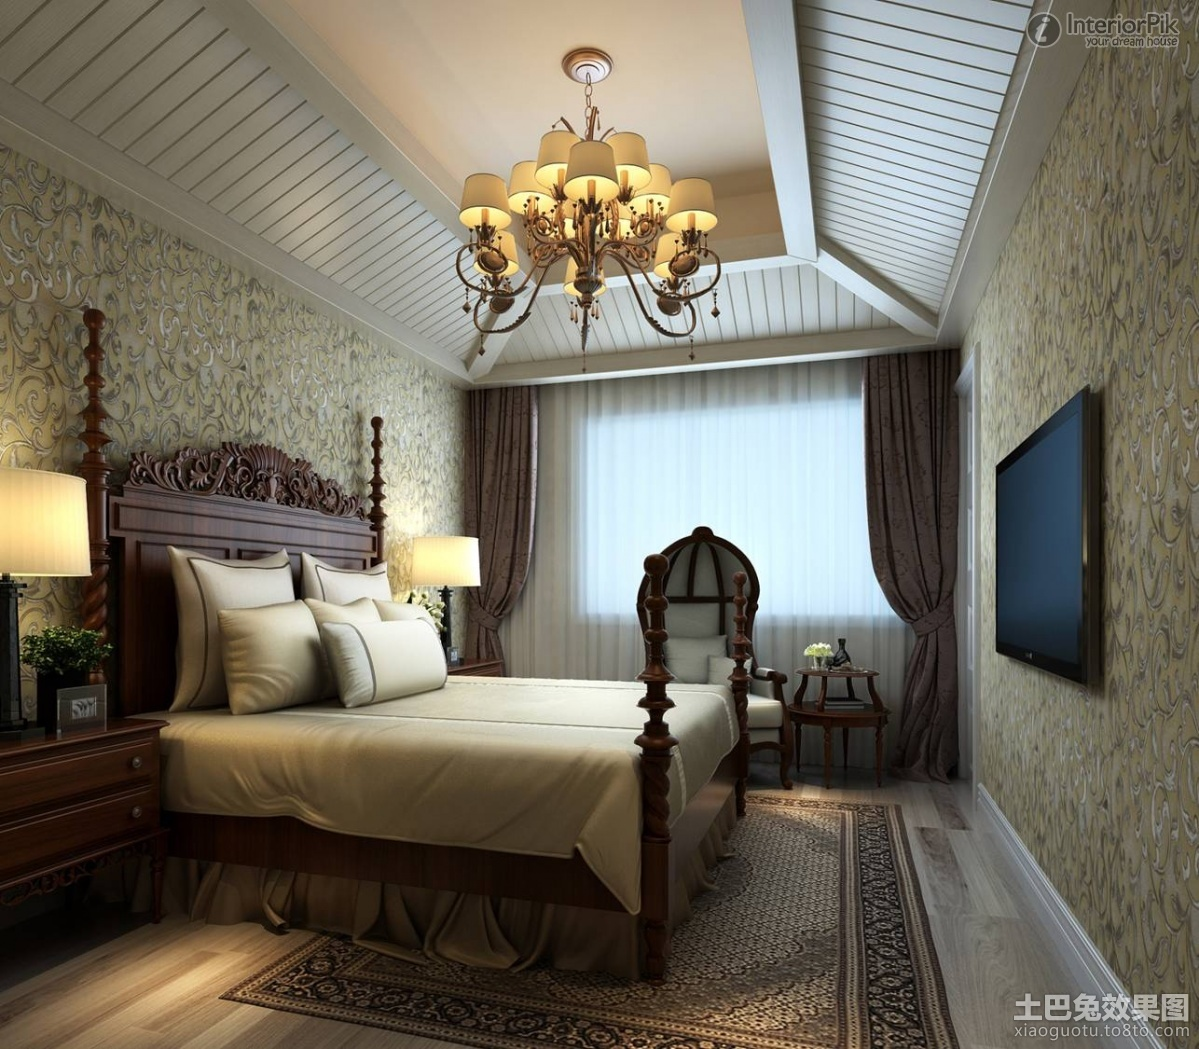 Top 7 Ideas To Make Your Bedroom Romantic Romantical Aid